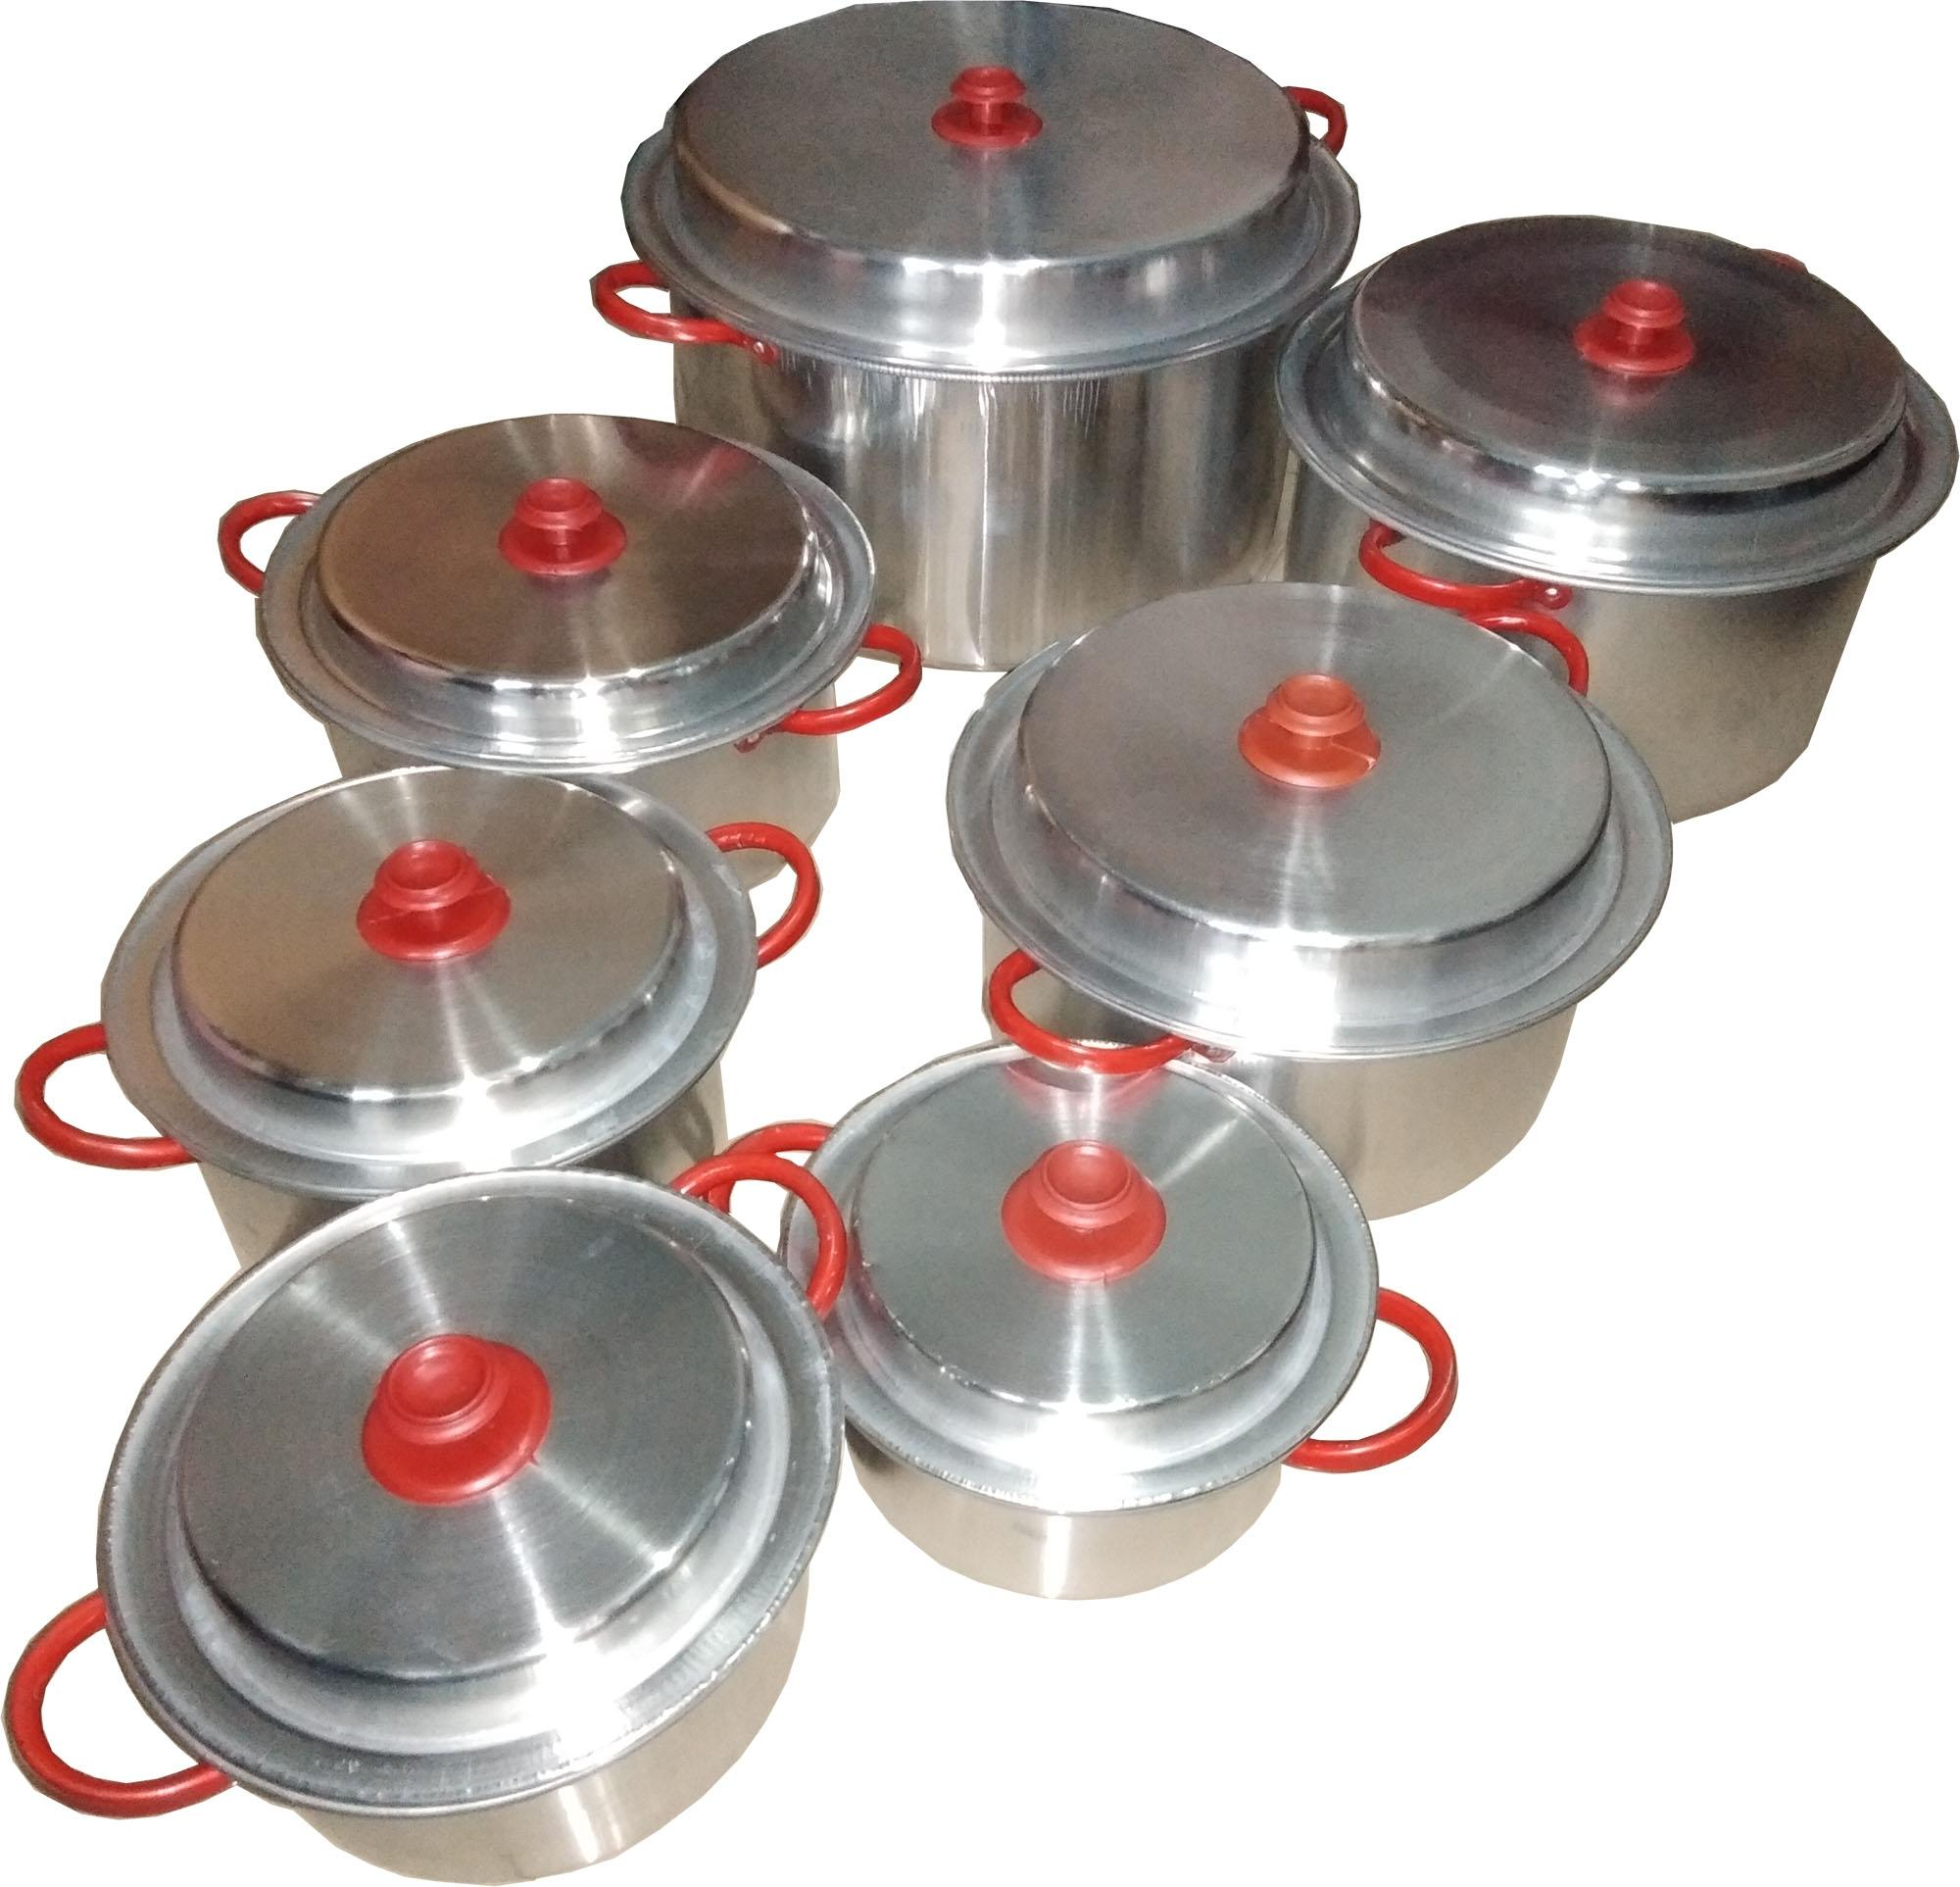 Saucepans Sets - 7 Pieces